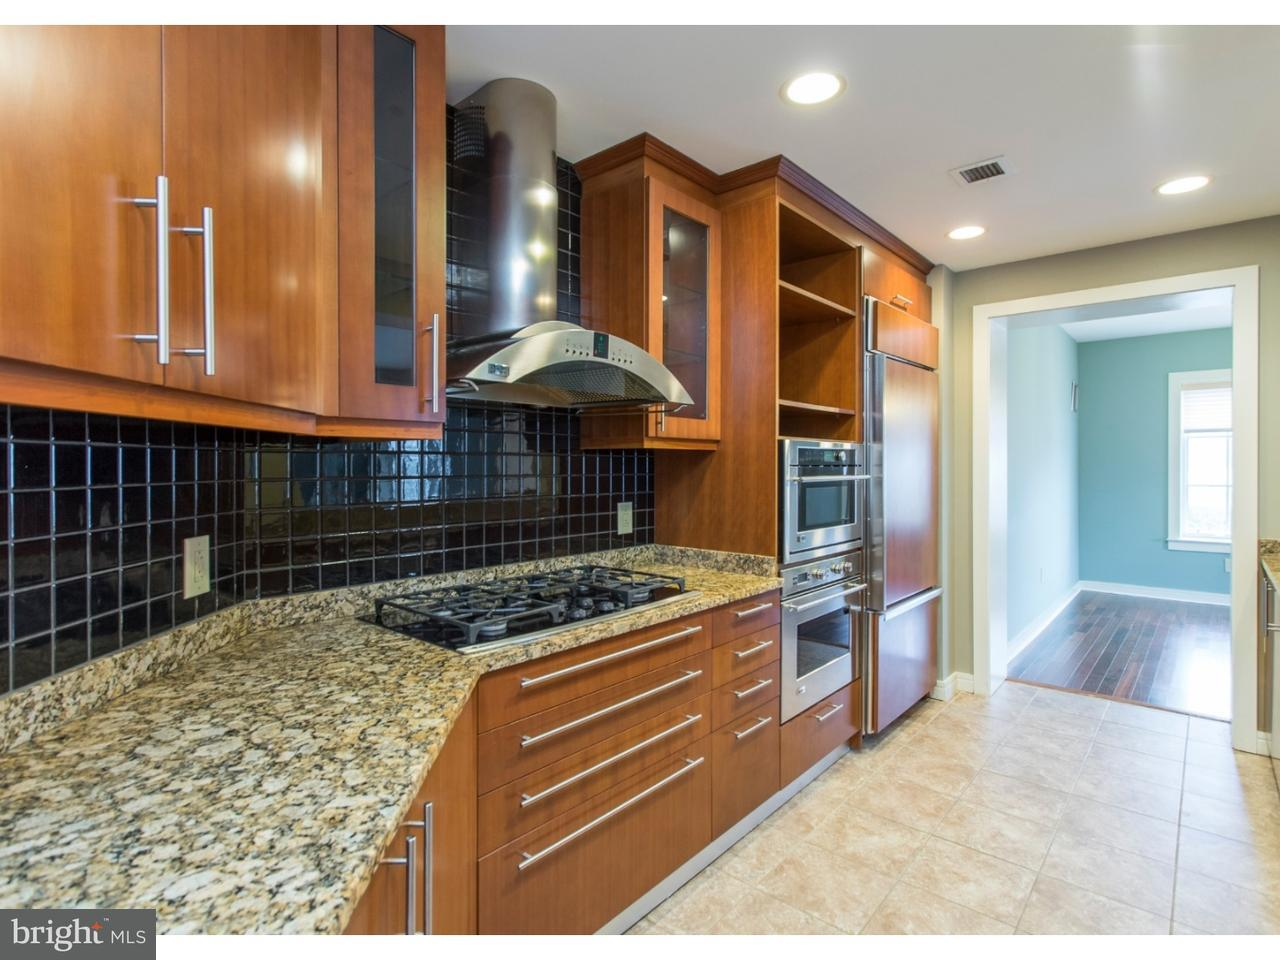 Single Family Home for Sale at 190 PRESIDENTIAL BLVD #319 Bala Cynwyd, Pennsylvania 19004 United States